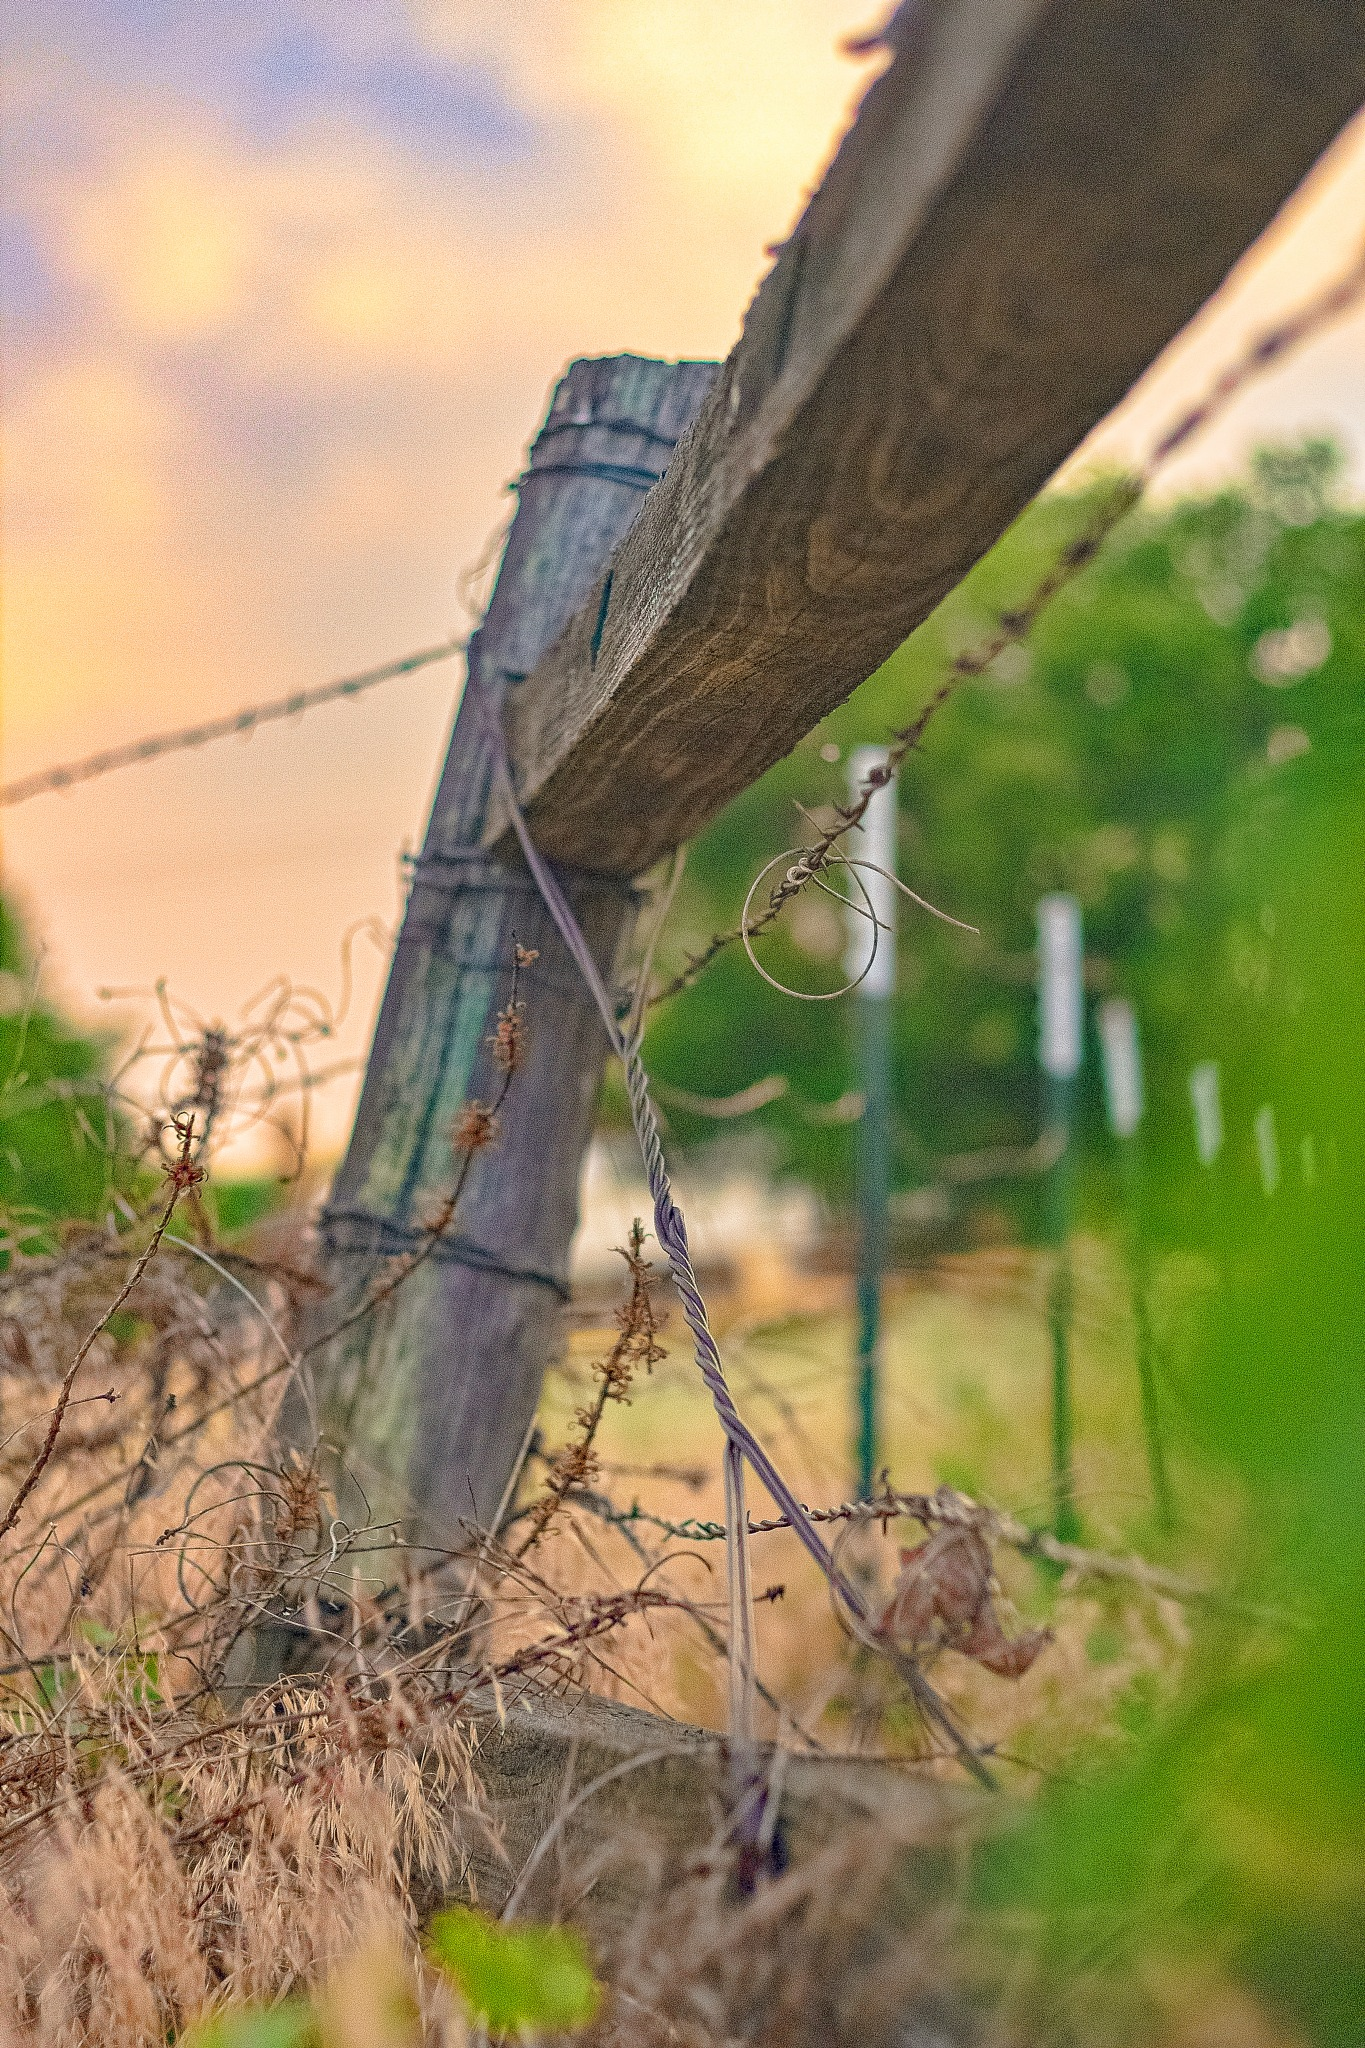 Fencepost and Barbed Wire by Marcellus Suber